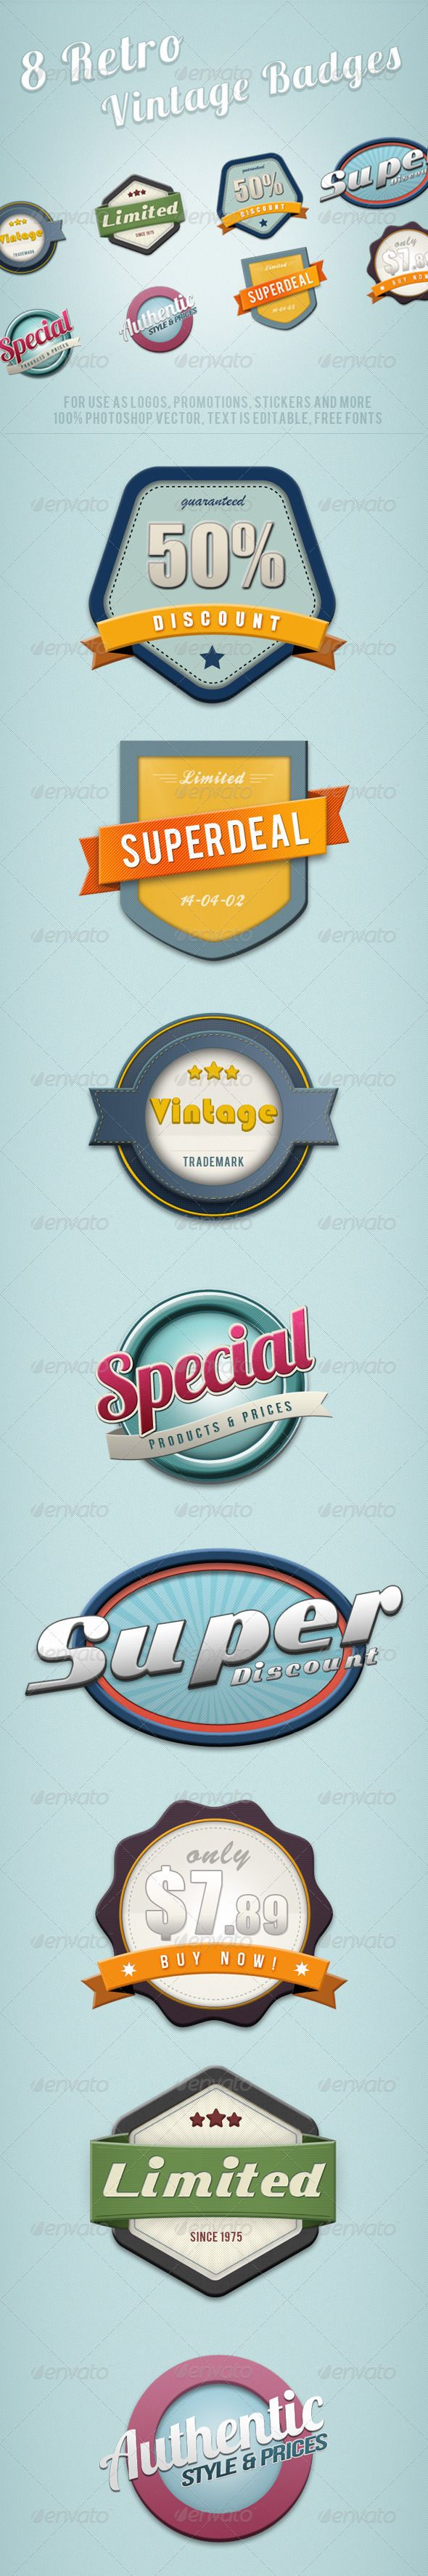 GraphicRiver 8 Retro Vintage Badges 2204846